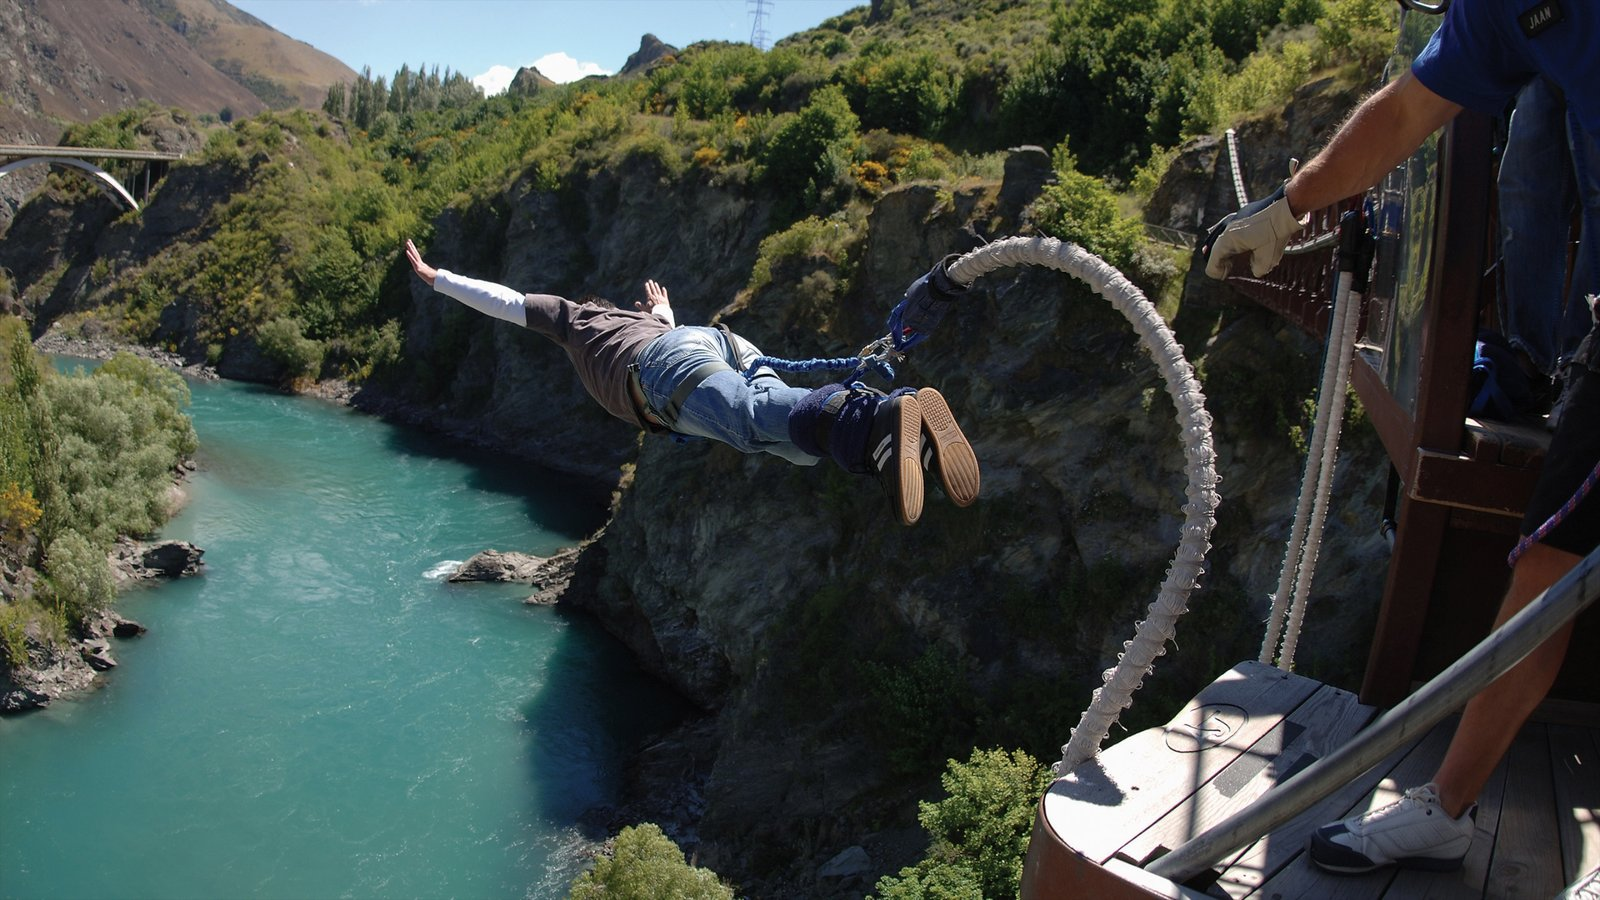 Queenstown showing bungee jumping and a river or creek